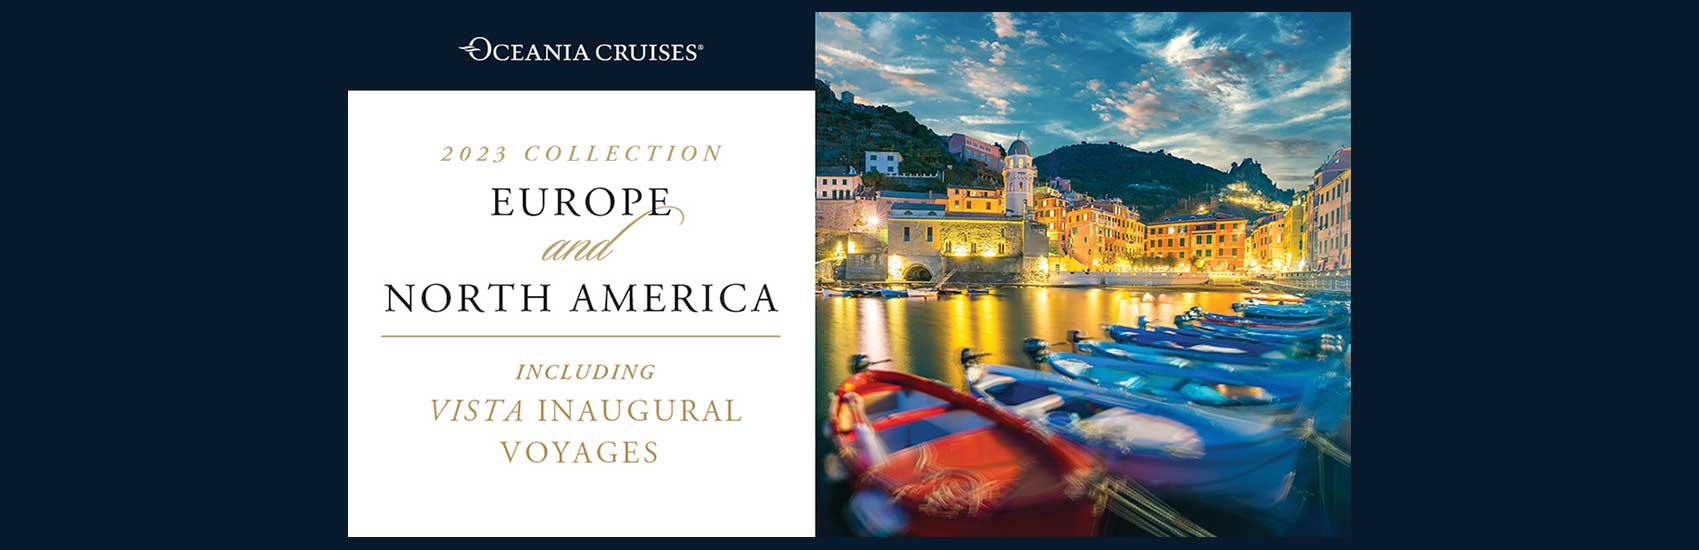 New 2023 North America and Europe Voyages with Oceania 0